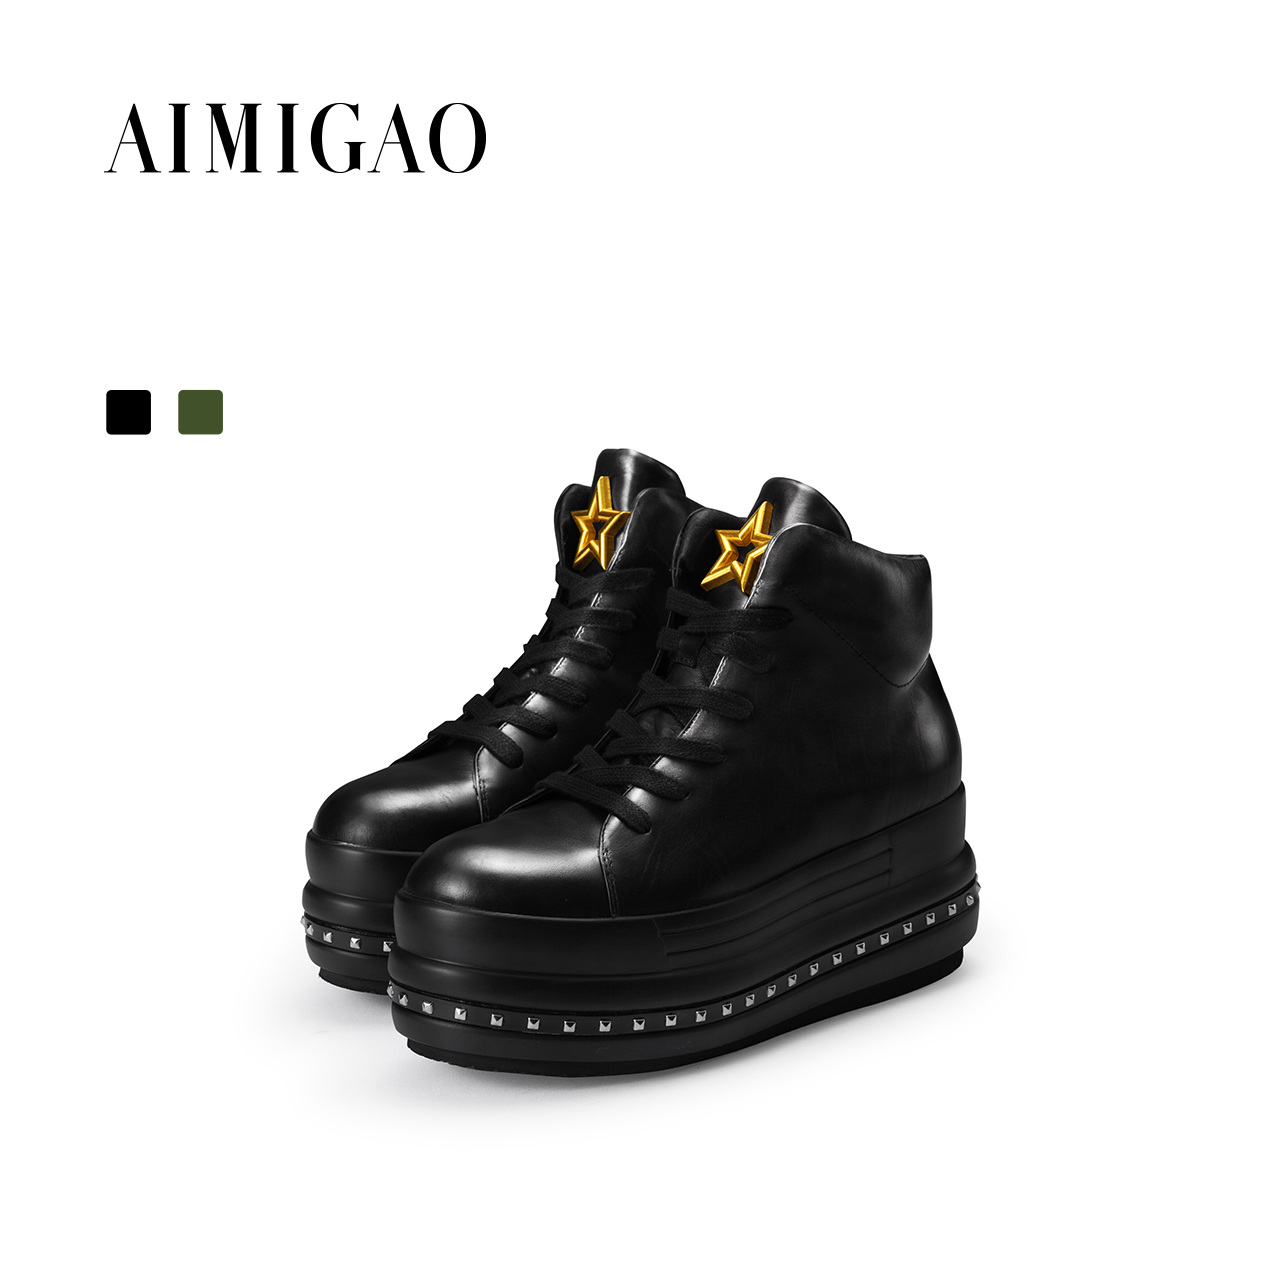 AIMIGAO 2017 autumn genuine leather rivet flat platform shoes fashion lace-up women casual shoes black front lace up casual ankle boots autumn vintage brown new booties flat genuine leather suede shoes round toe fall female fashion